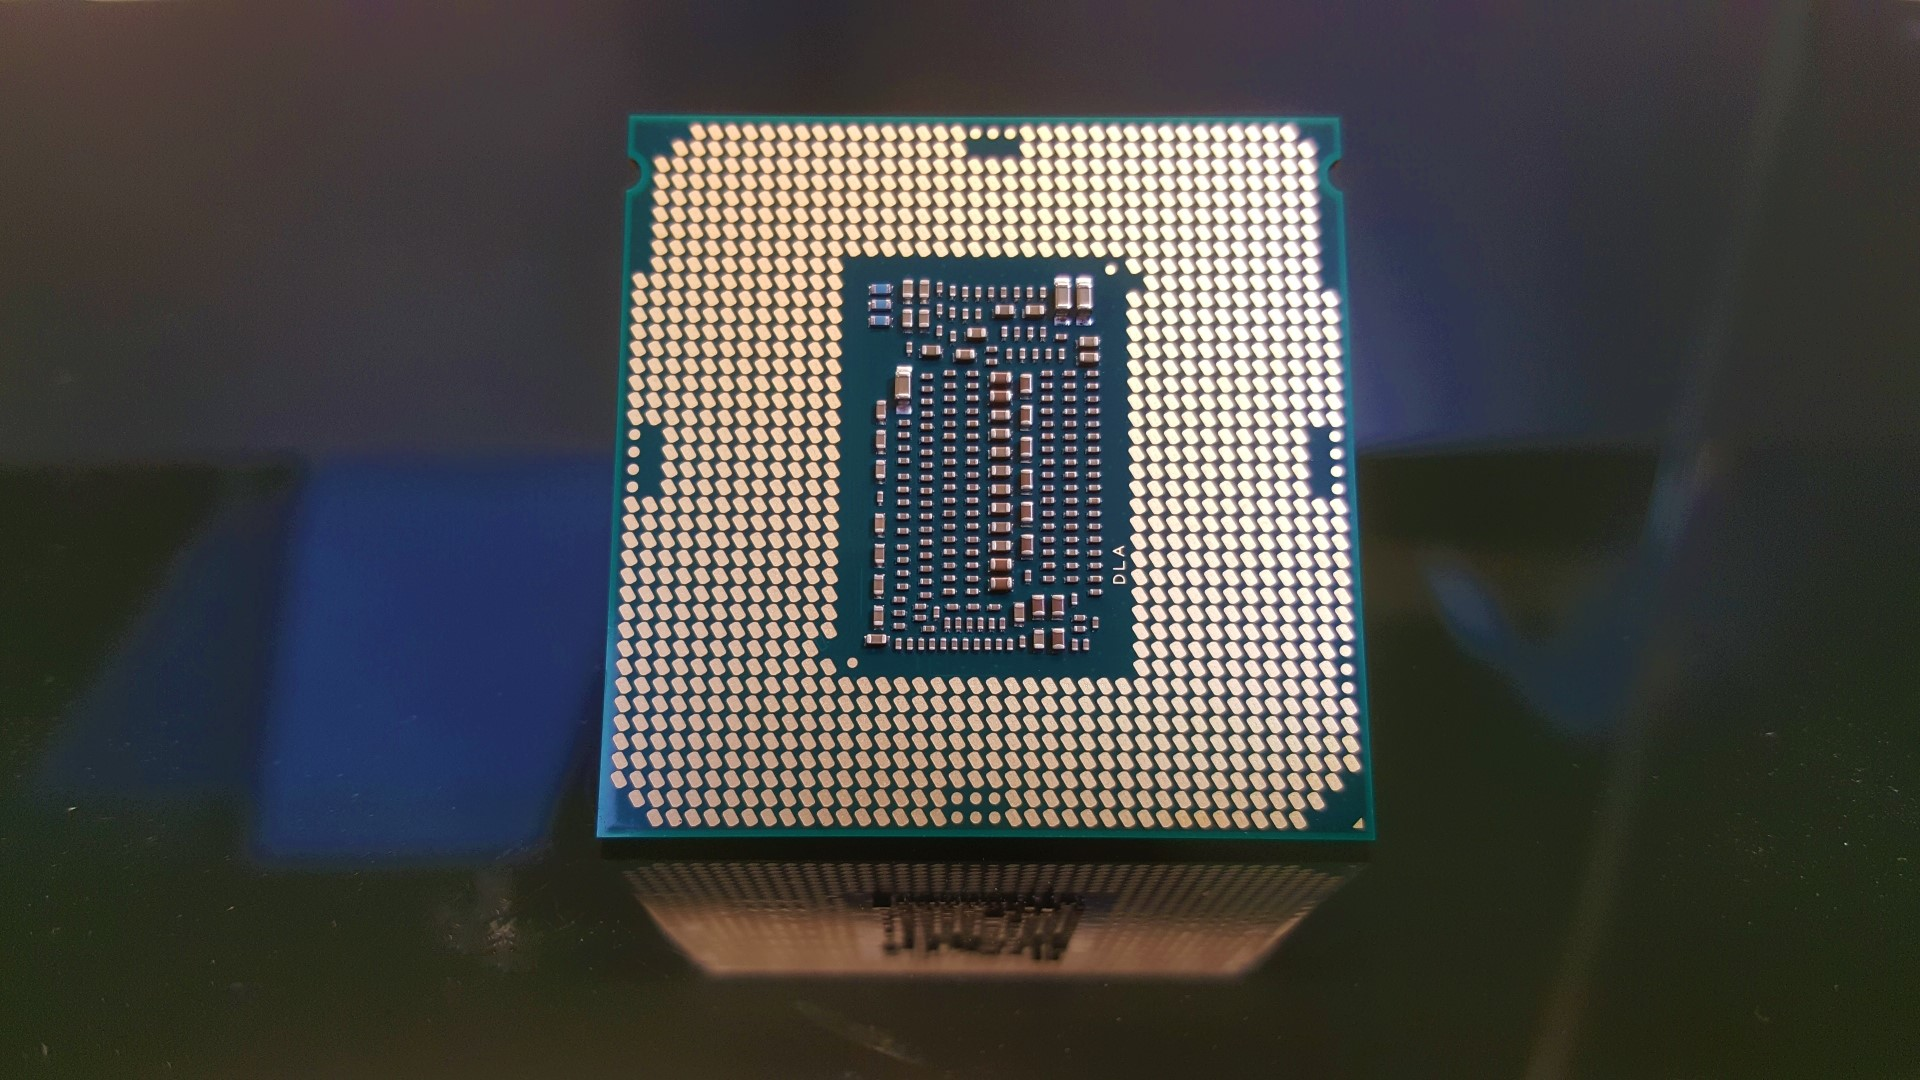 New Intel i9 9900K CPU benchmarks come with updated AMD